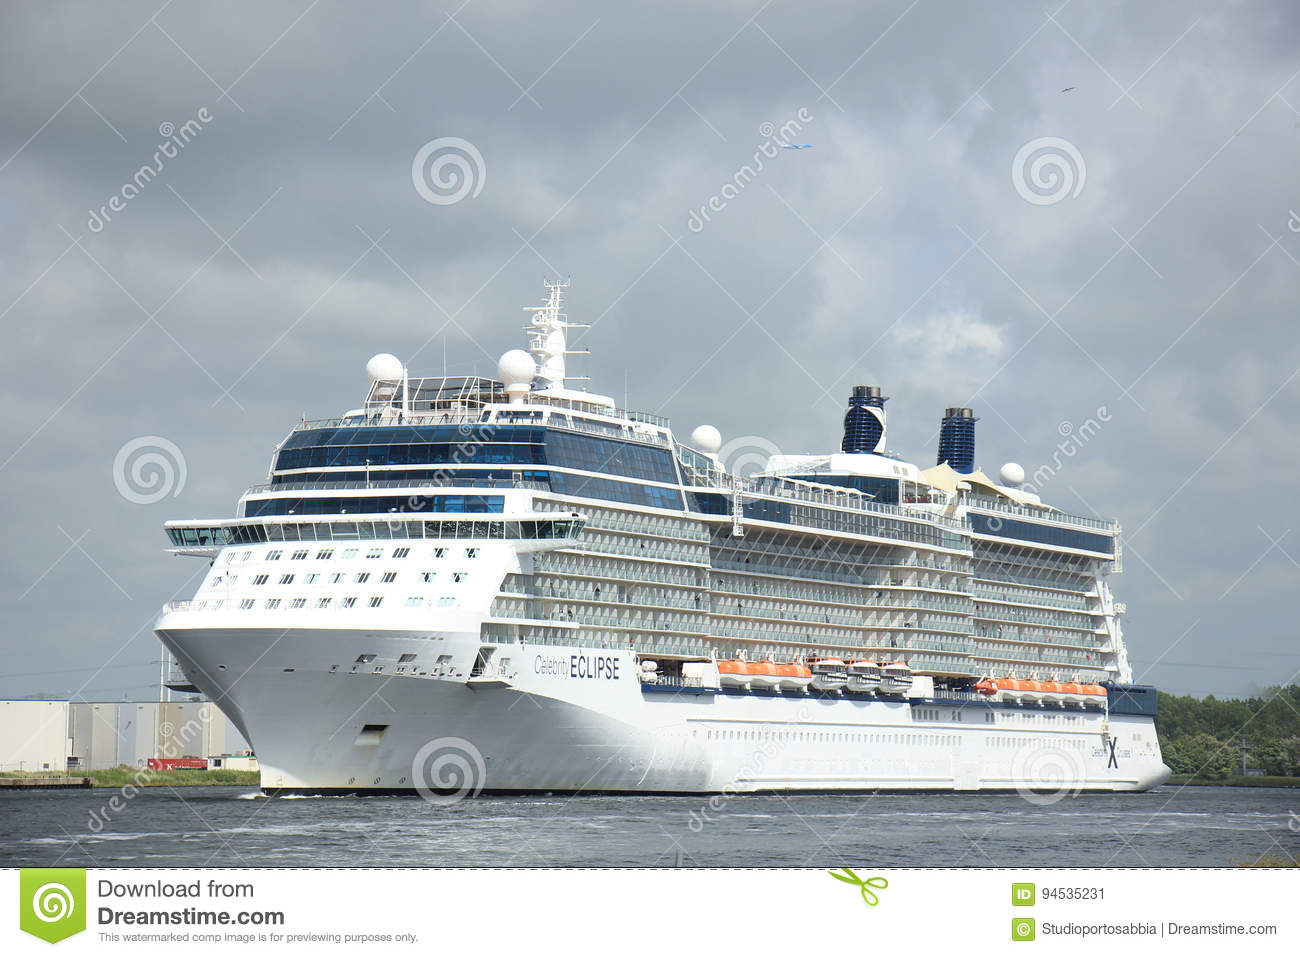 Water - Celebrity Cruises - Cruise Critic Community